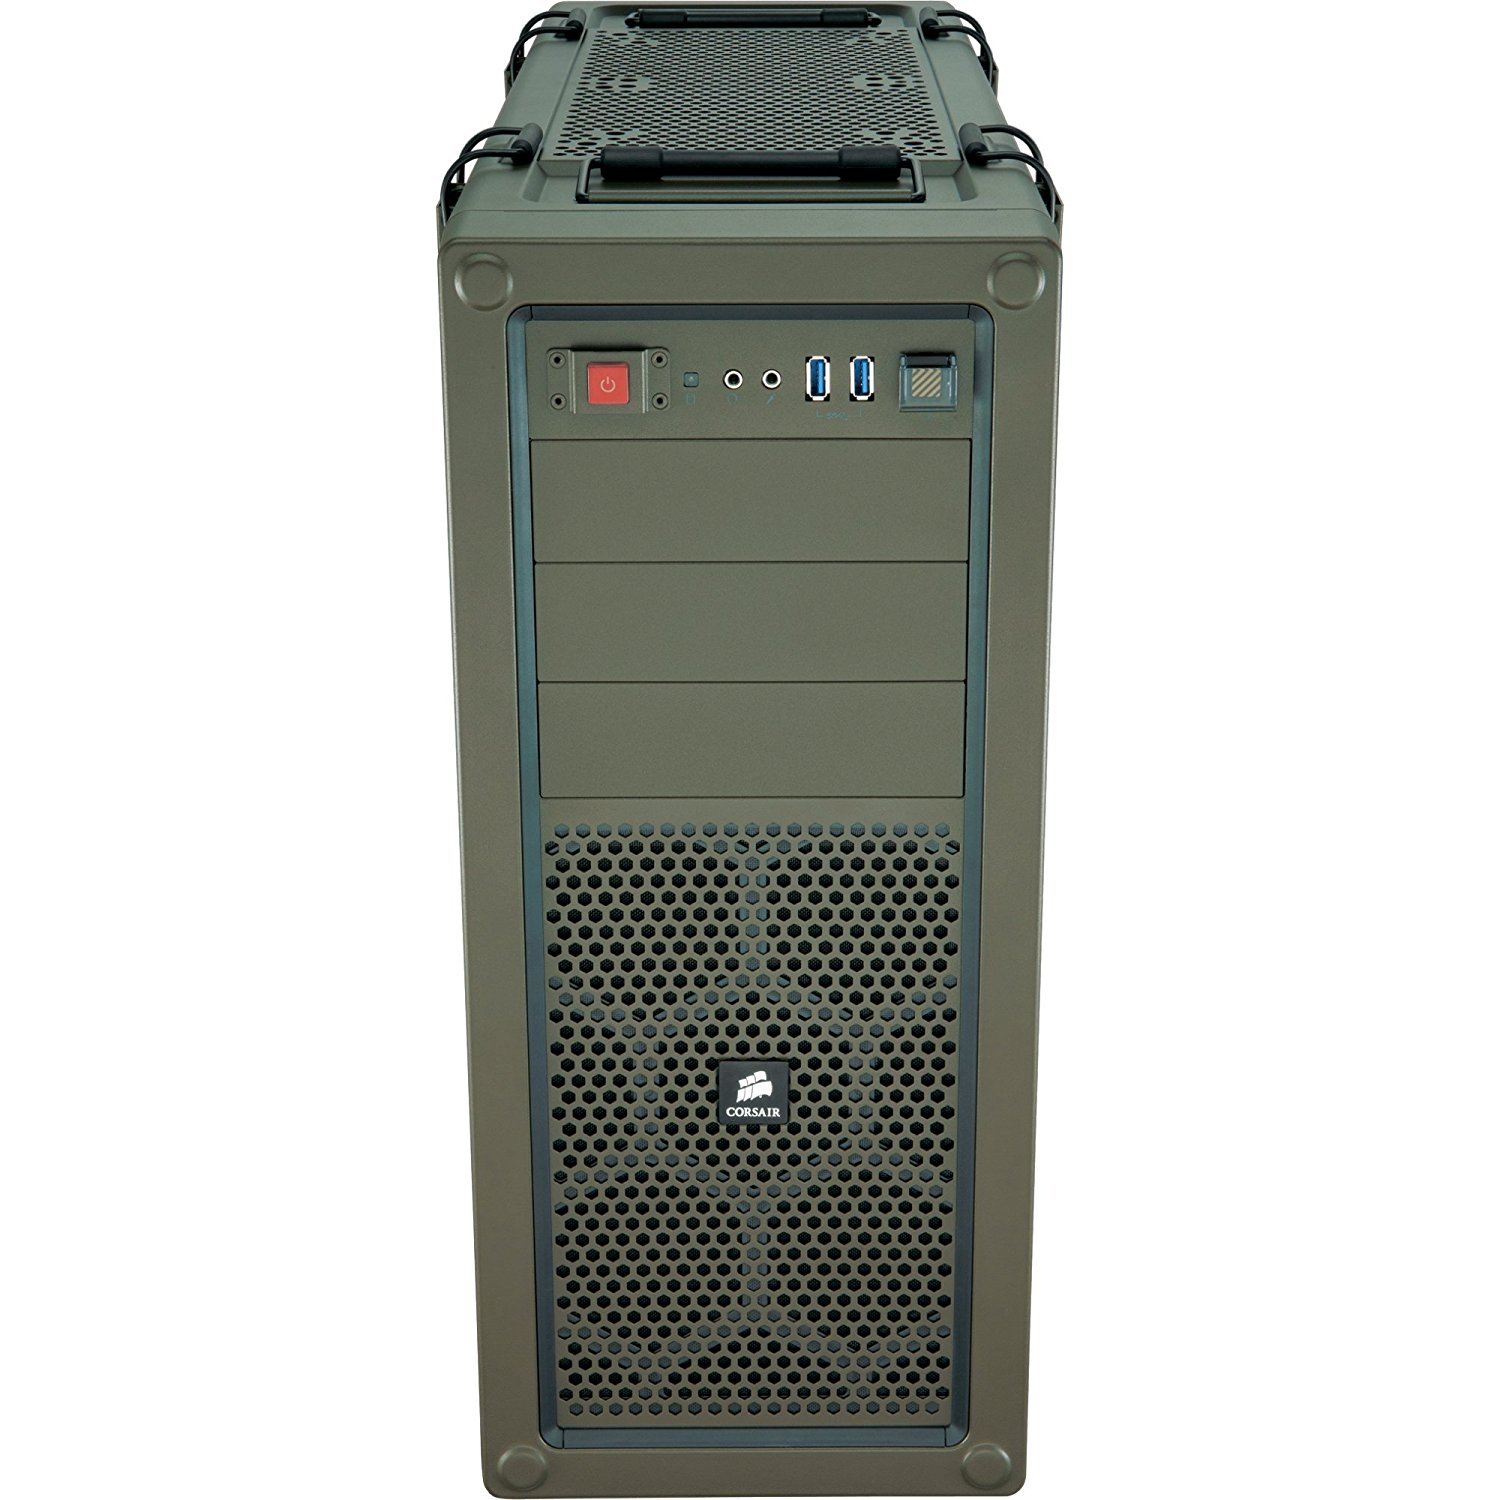 Corsair CC-9011018-WW Vengeance C70 Mid-Tower Gaming Case - Military Green - Mid-tower - Military Green - Steel - 9 x Bay - 3 x Fan(s) Installed - ATX, Micro ATX Motherboard Supported